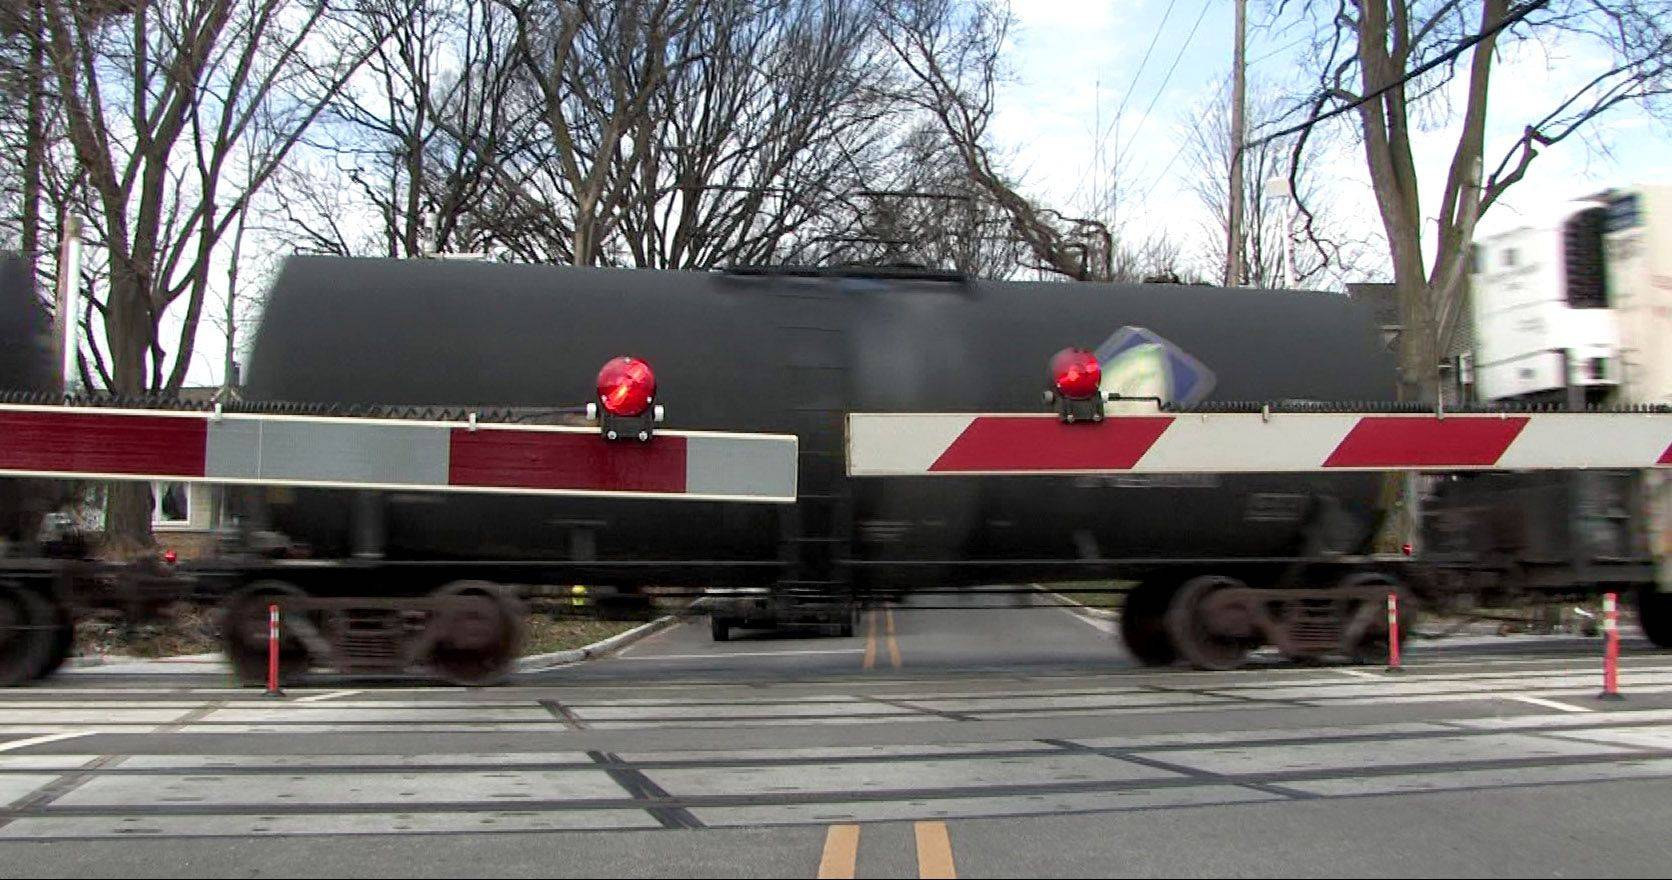 Making railroad crossings safer is father's crusade